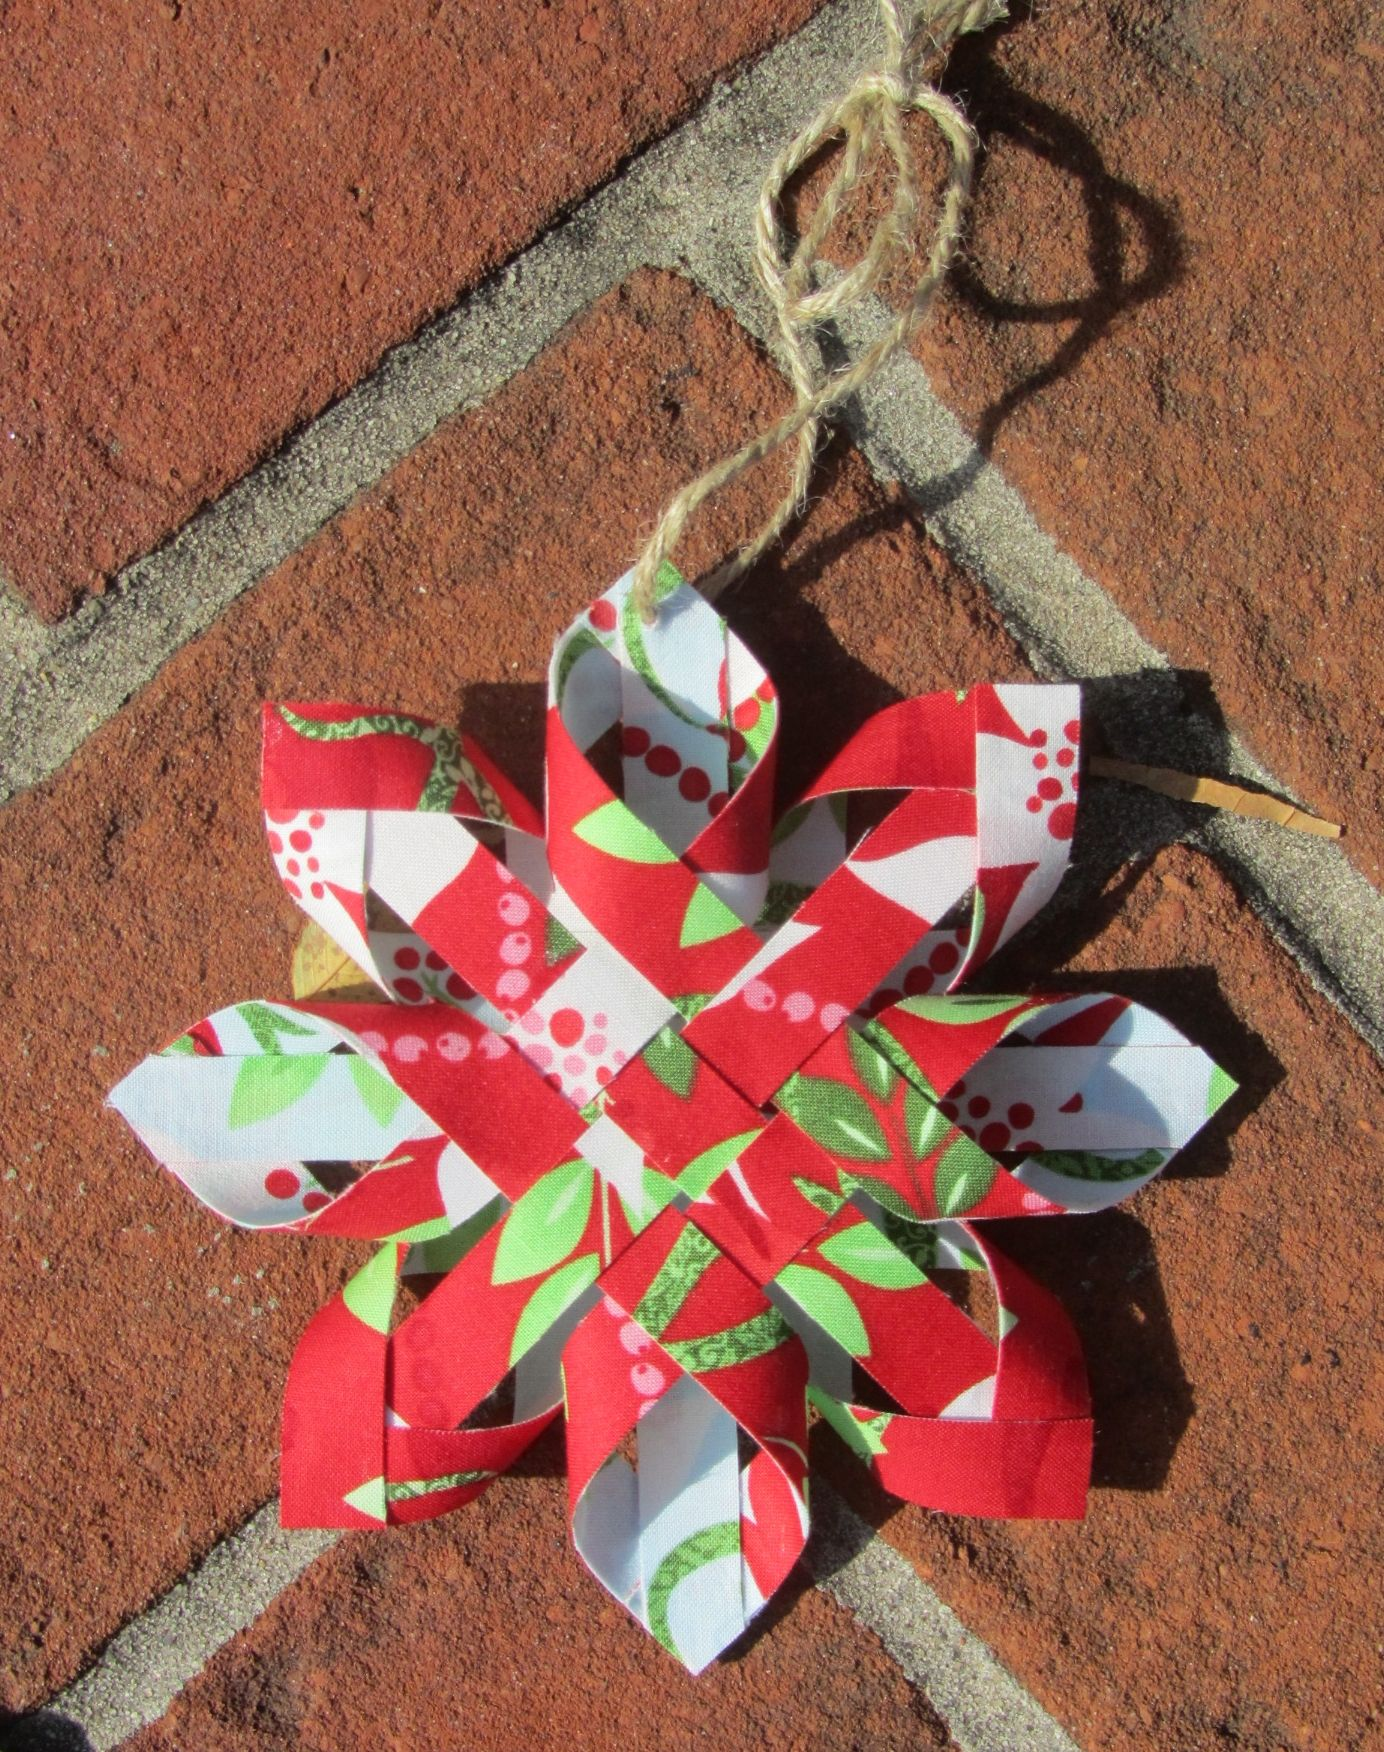 Fabric Woven Star Ornaments Are So Easy To Make Quilting Digest Fabric Christmas Ornaments Quilted Christmas Ornaments Handmade Christmas Ornaments